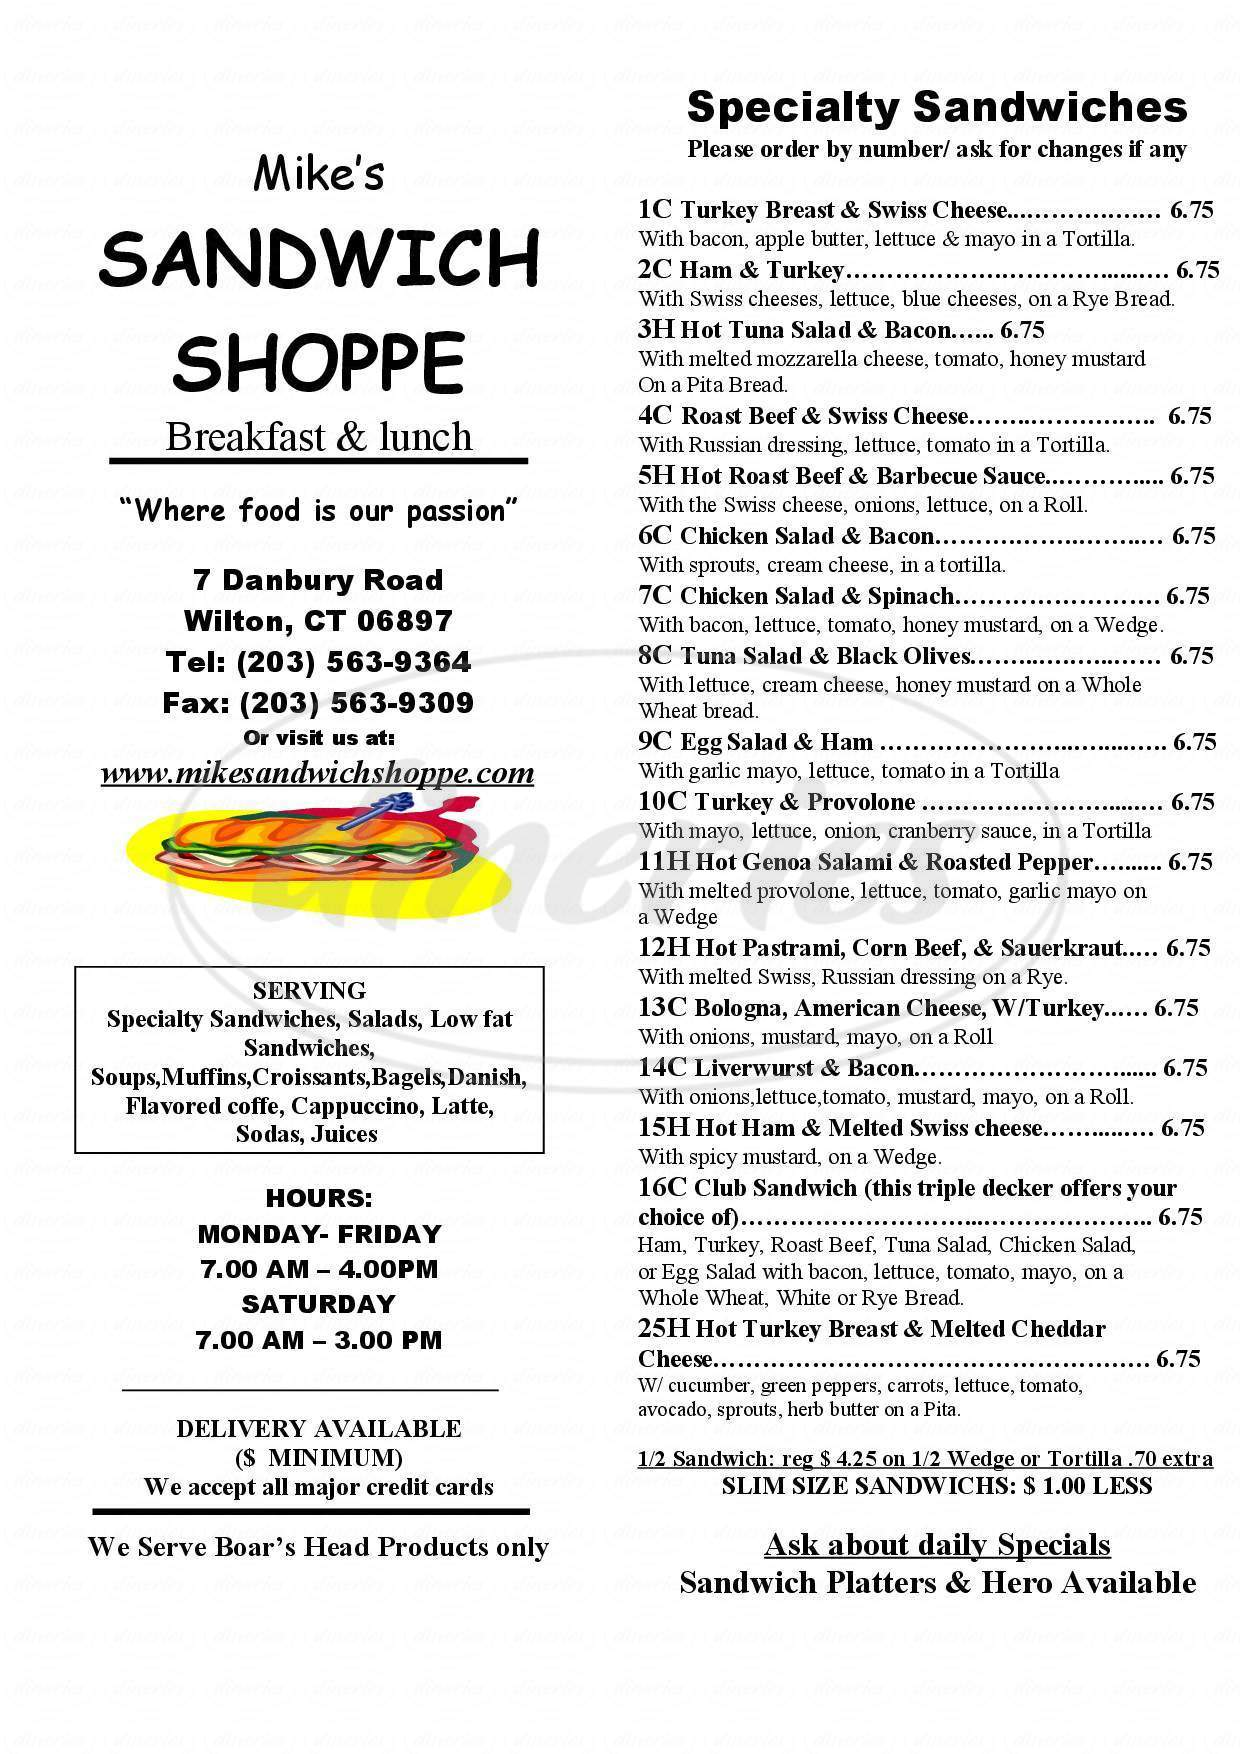 menu for The Sandwich Shoppe